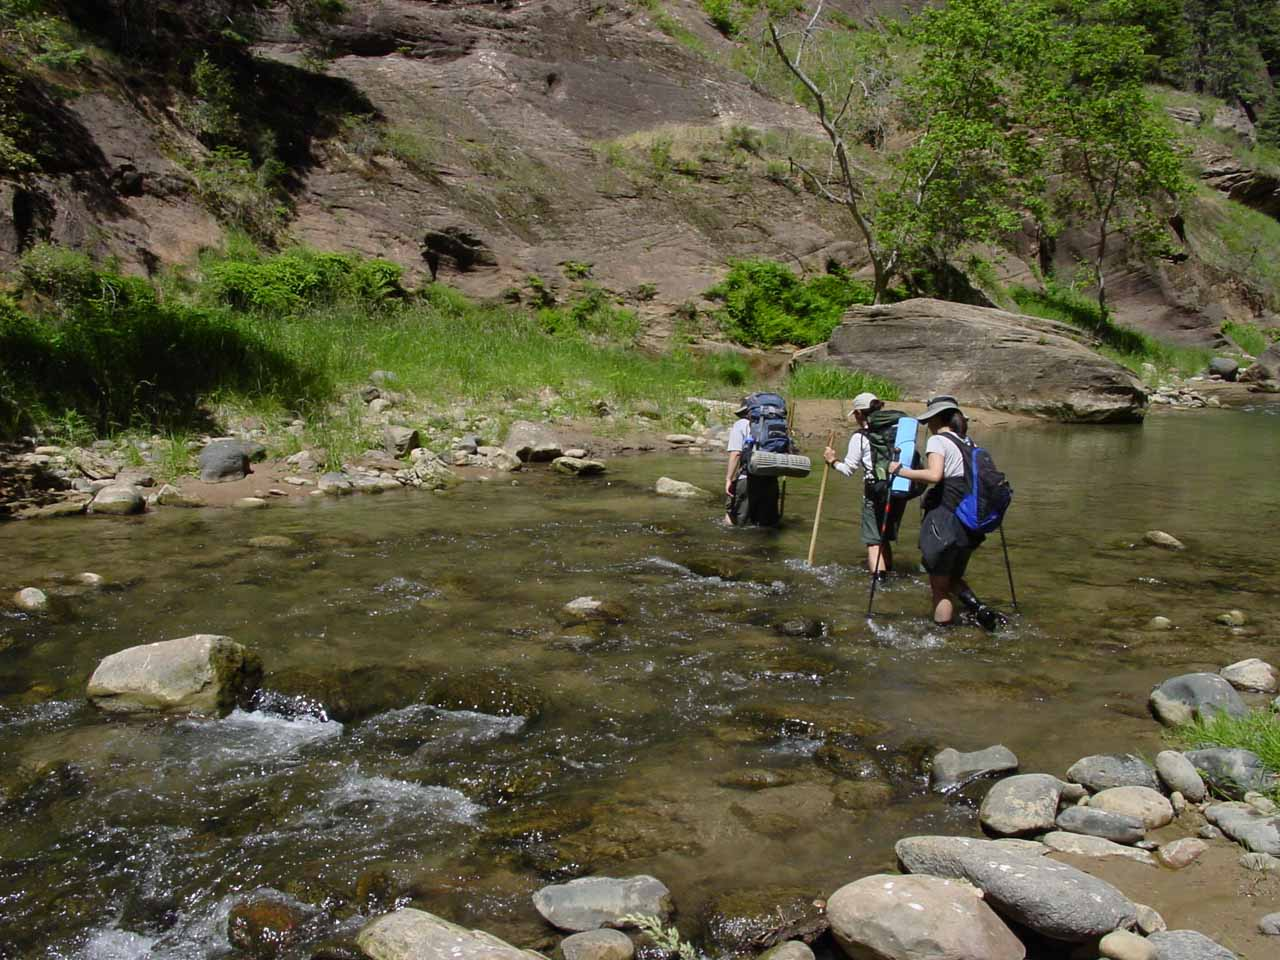 More sloshing our way through the Virgin River as sun had penetrated its depths